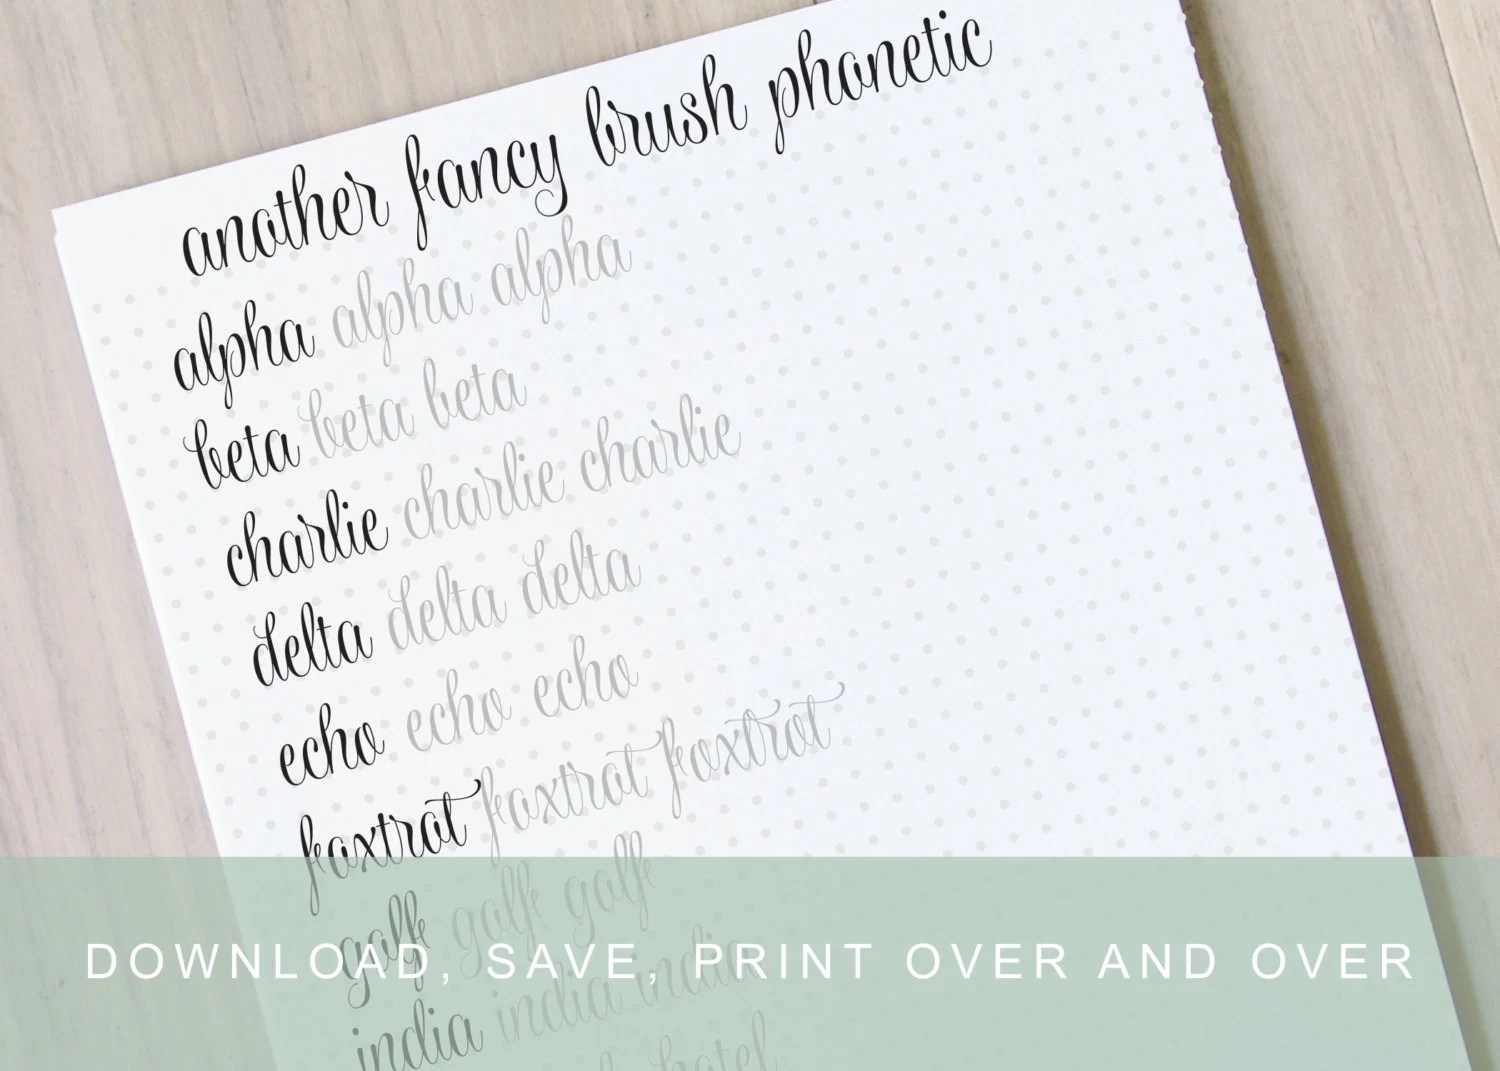 Another Fancy Brush Lettering Worksheet Calligraphy